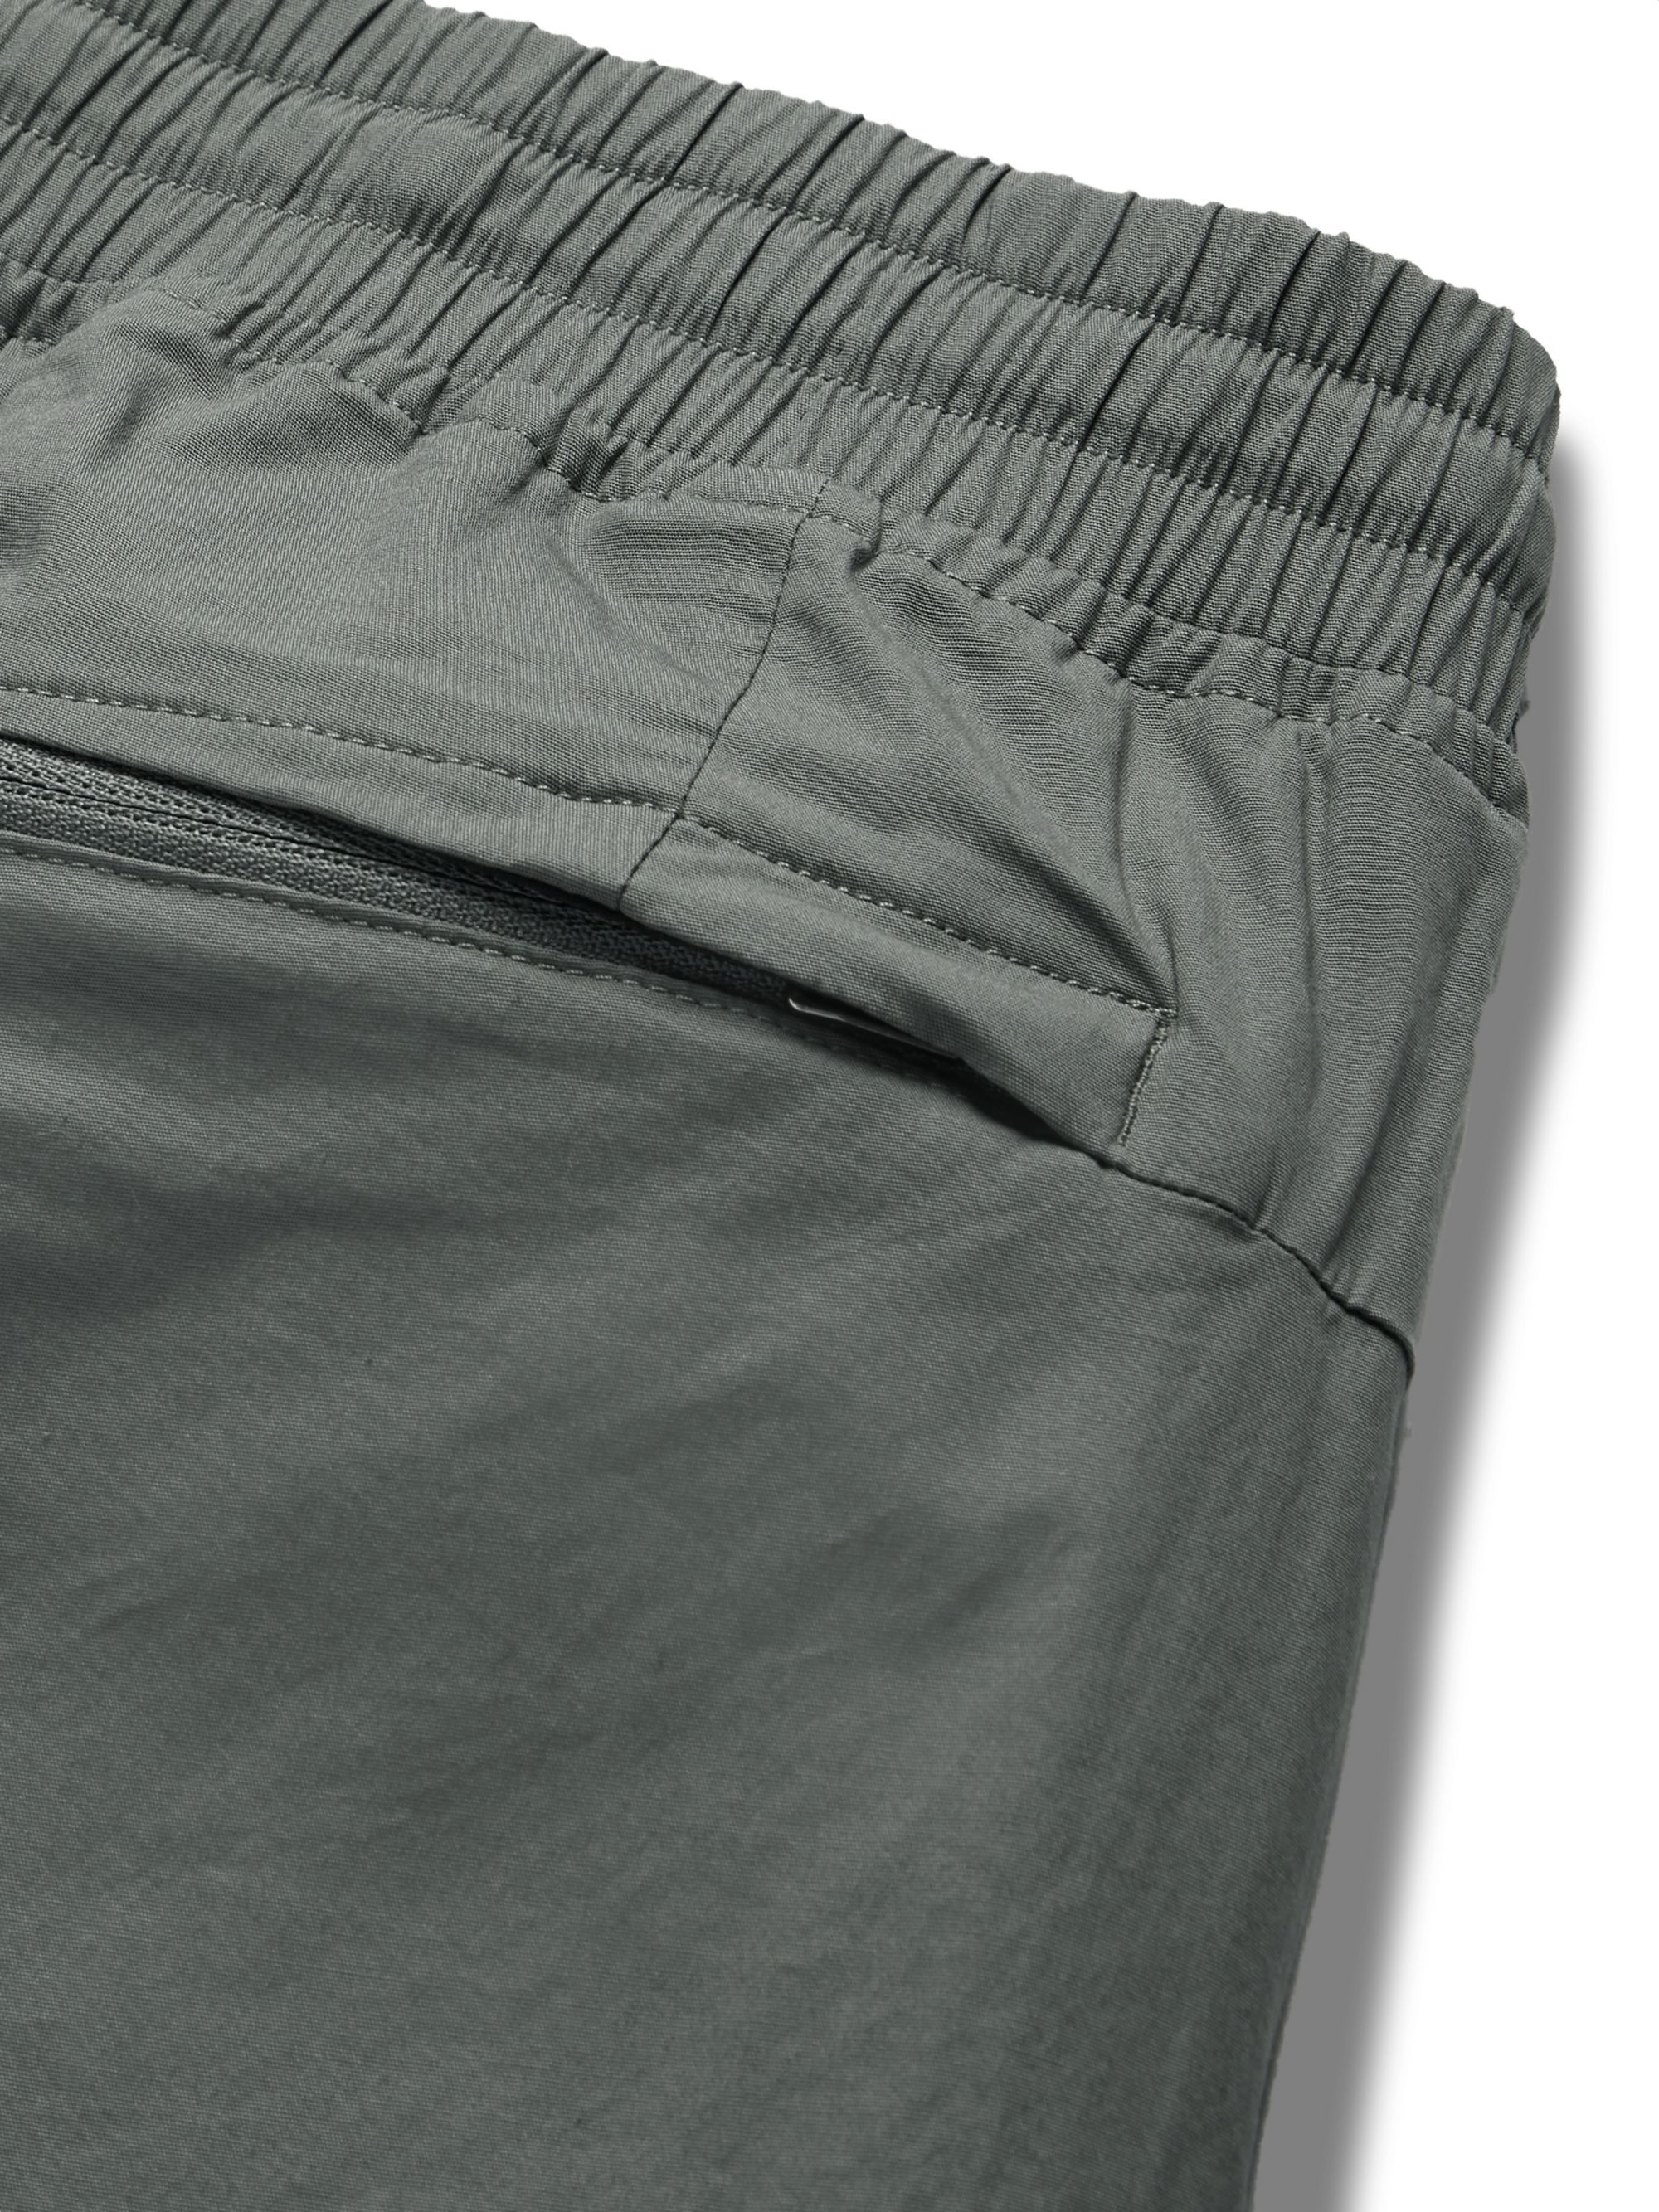 Lululemon Bowline Cotton-Blend Drawstring Shorts